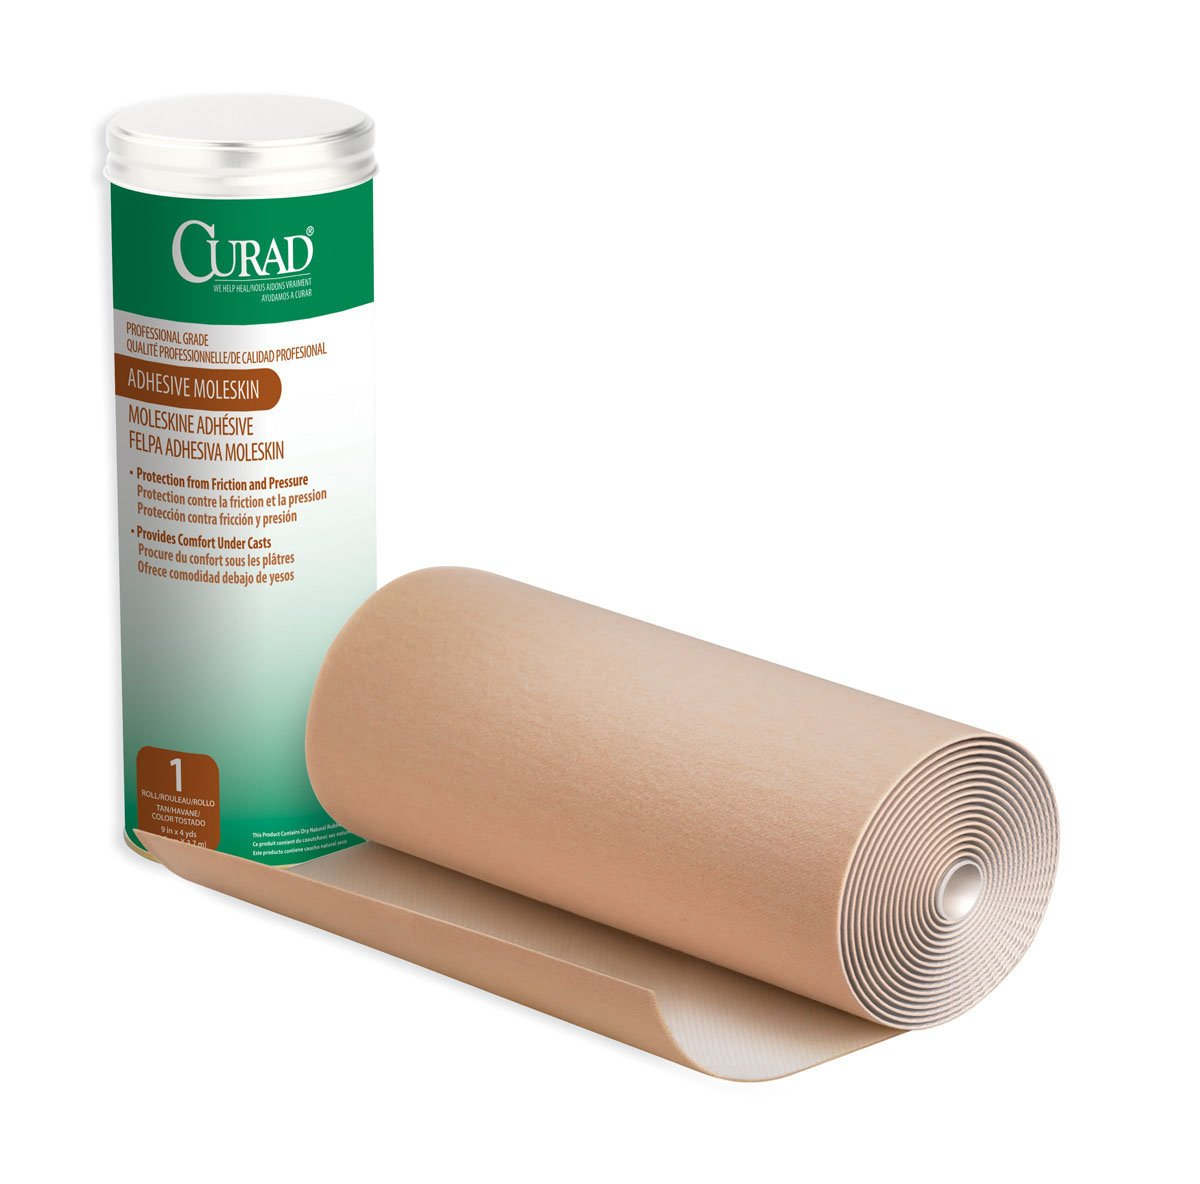 CURAD Adhesive Moleskin Roll, Prevent Blisters, Corns and Calluses, 9'' x4 YDS, 1 Roll